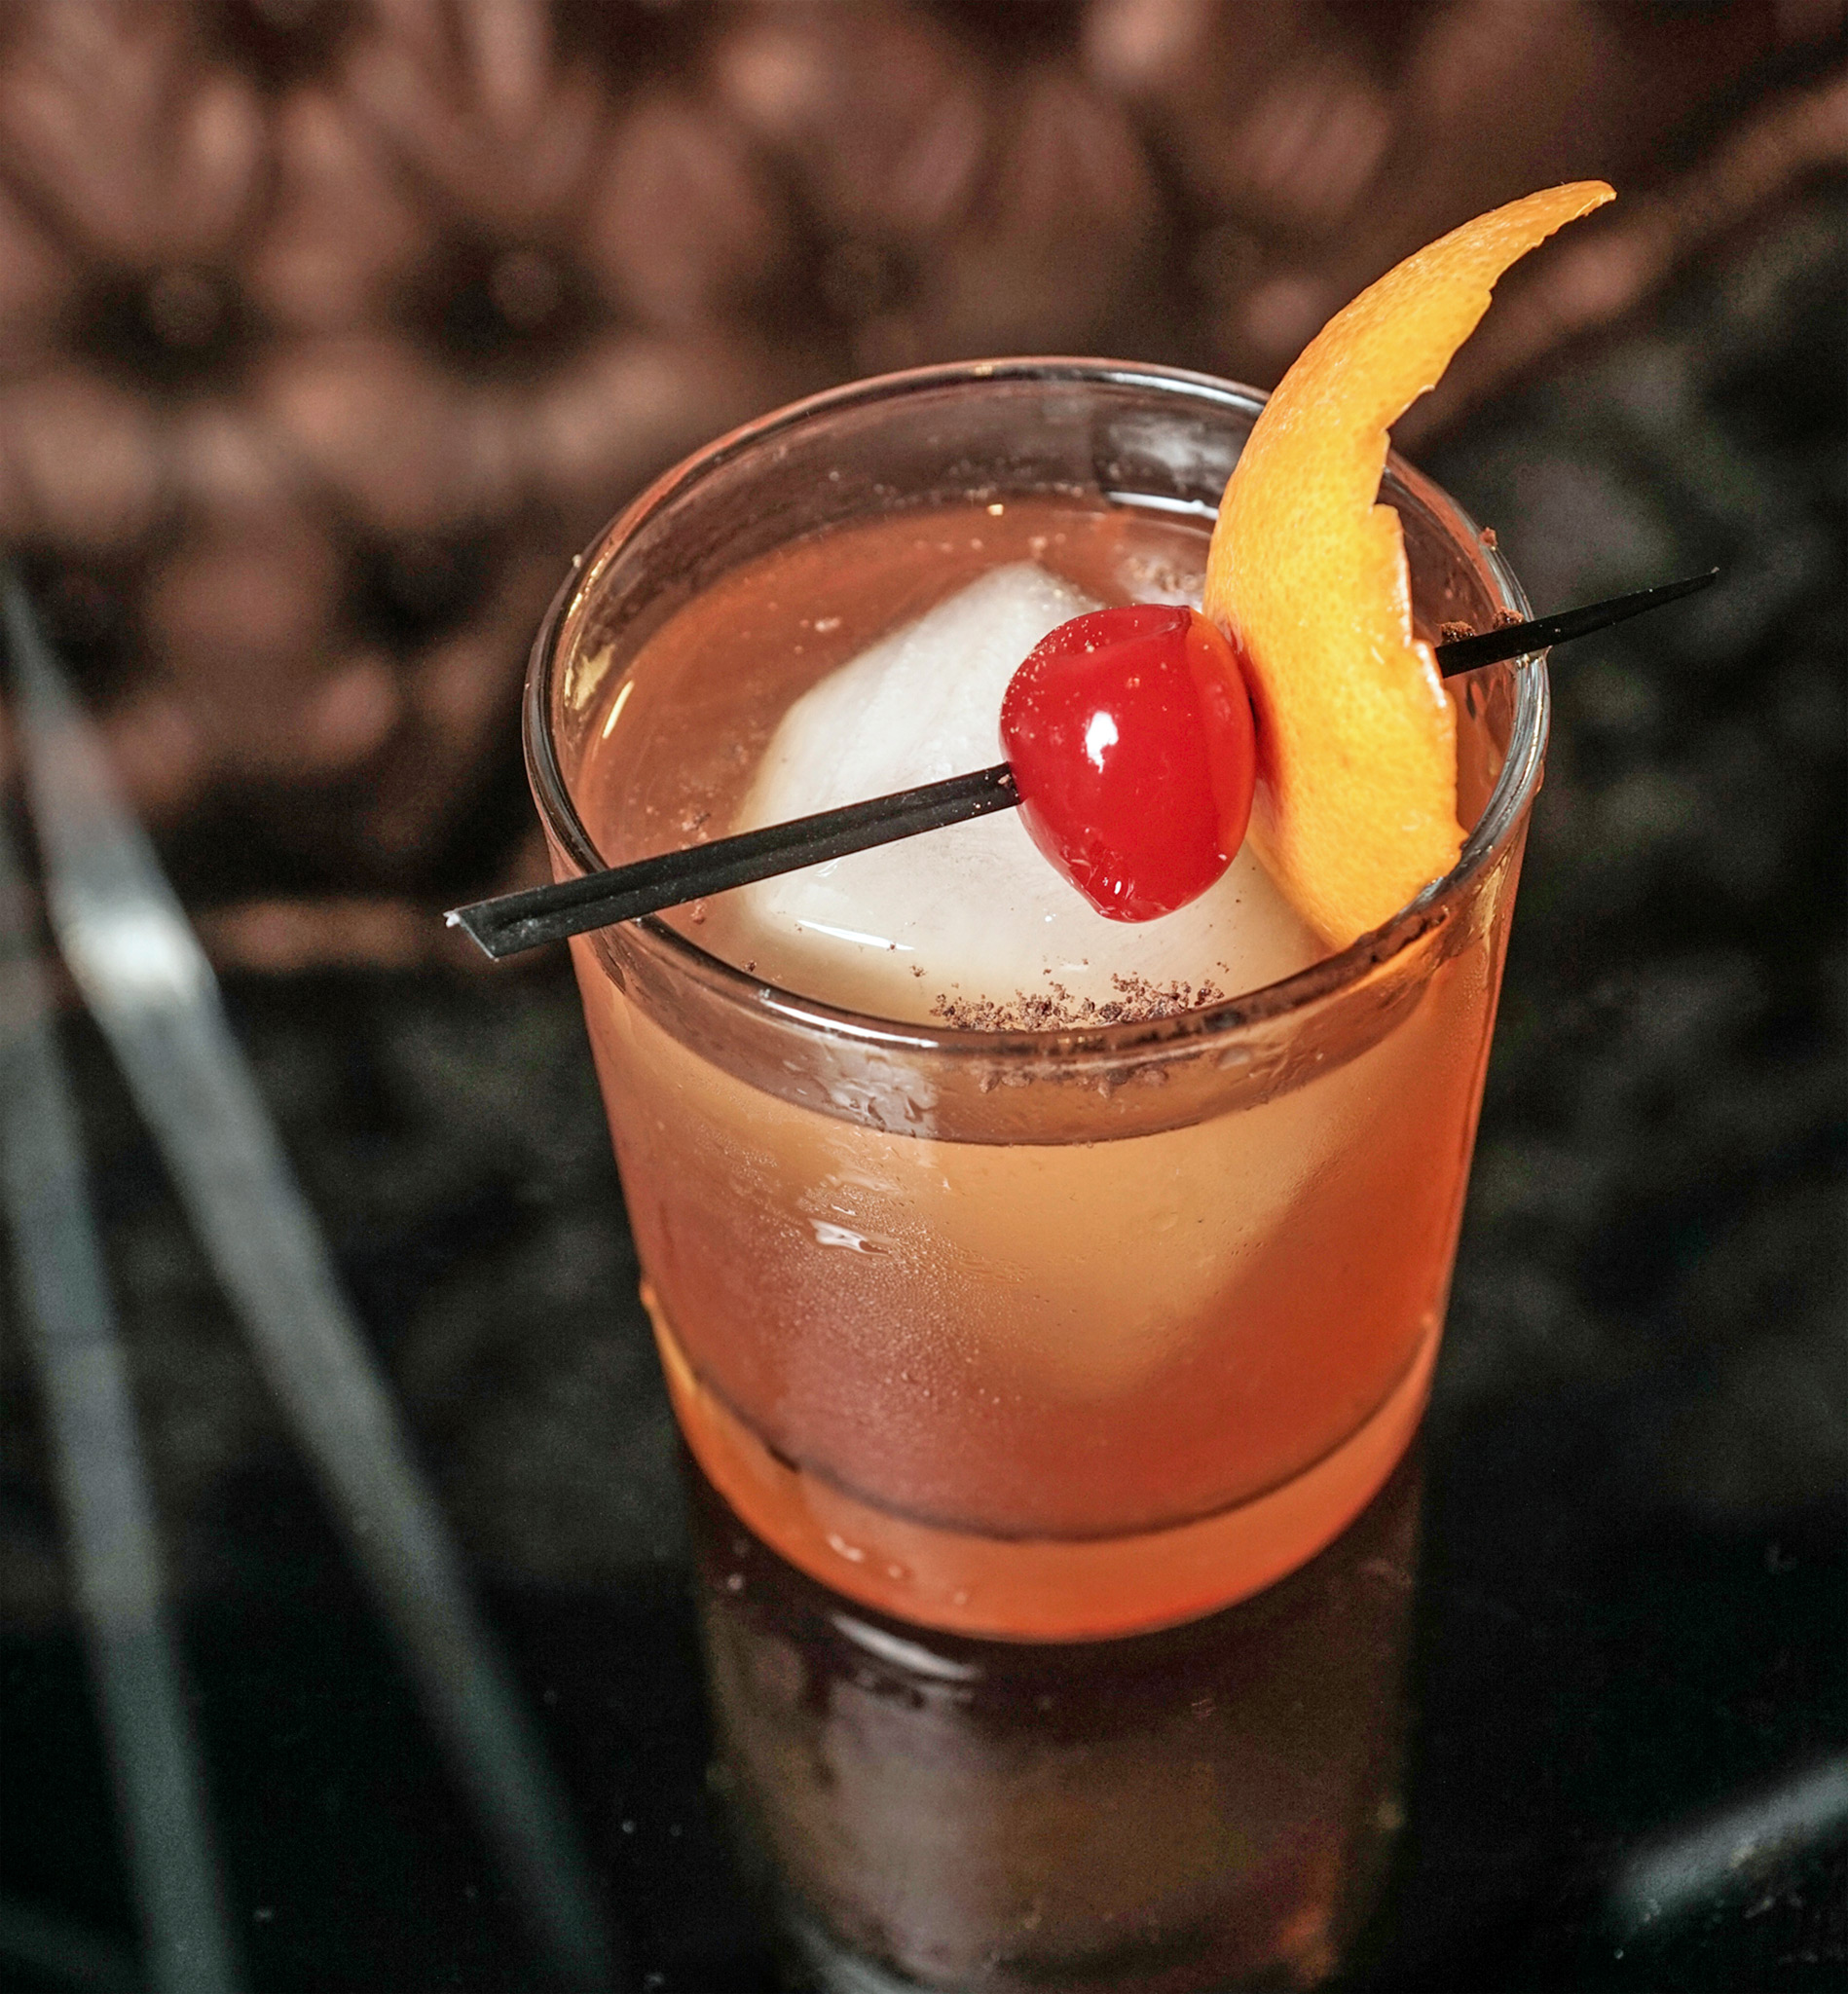 Chocolate Old Fashioned - buffalo trace bourbon, tempus fugit creme de cacao, angostura bitters, luxardo cherry & orange peel